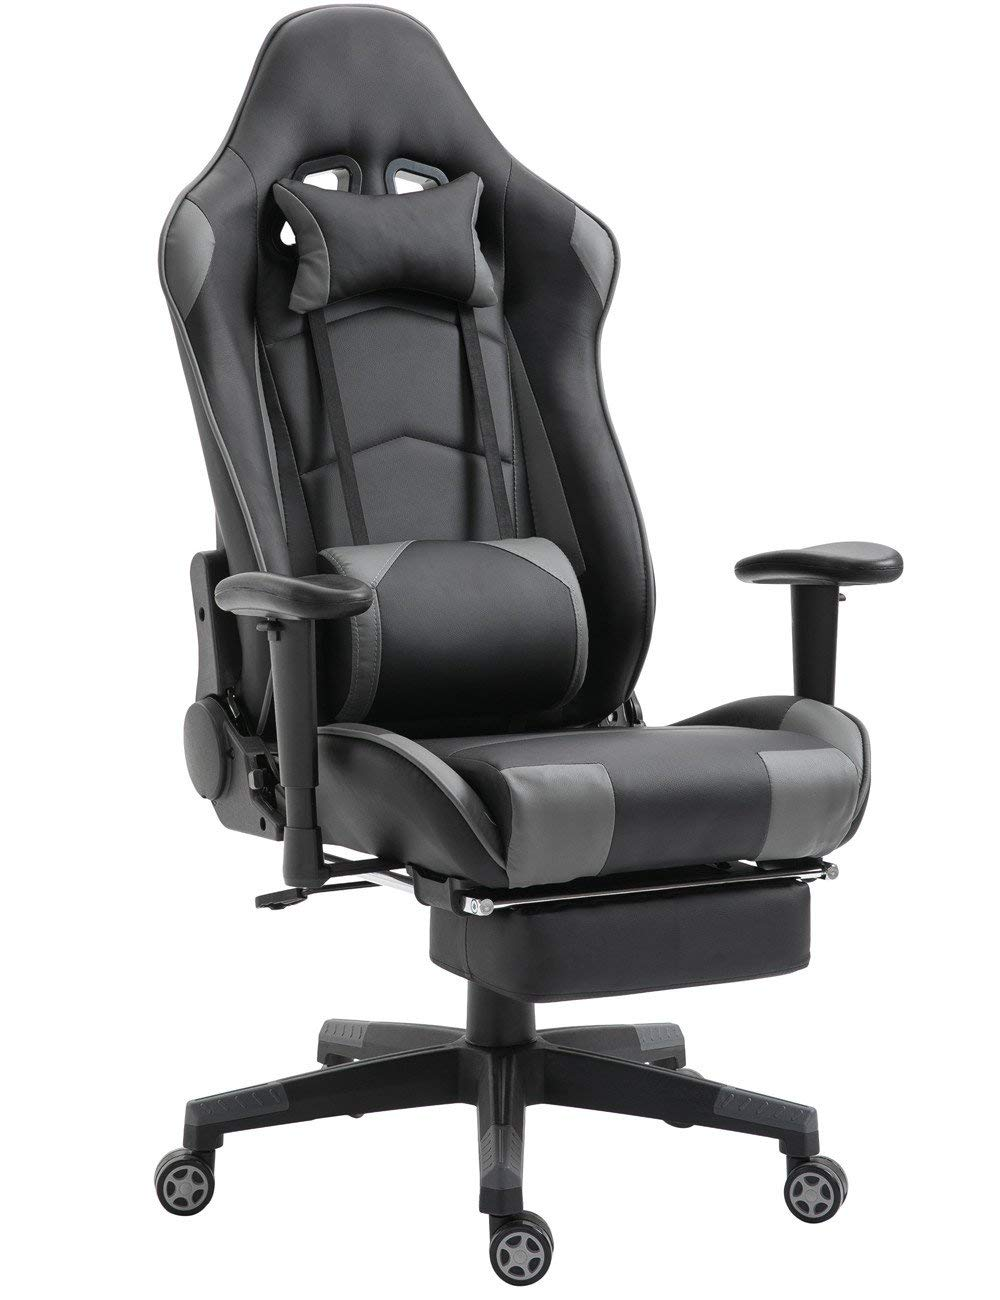 Gaming Chair High Back Ergonomic Racing Chair with Footrest Adjustable Height Swivel Office Chair with Headrest Lumbar Support (Black/Grey,1)